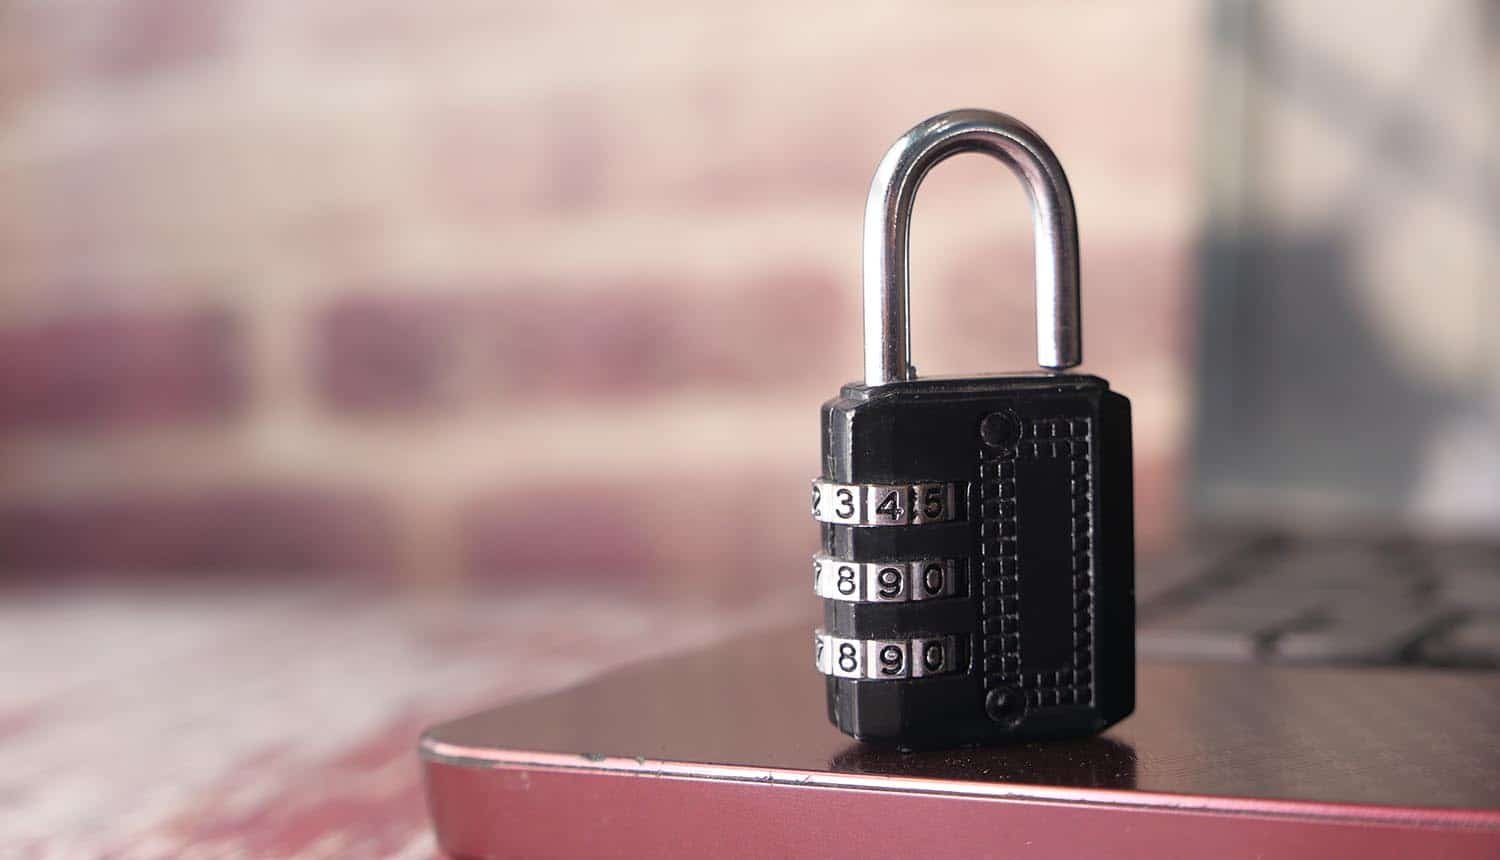 Padlock on laptop for cybersecurity